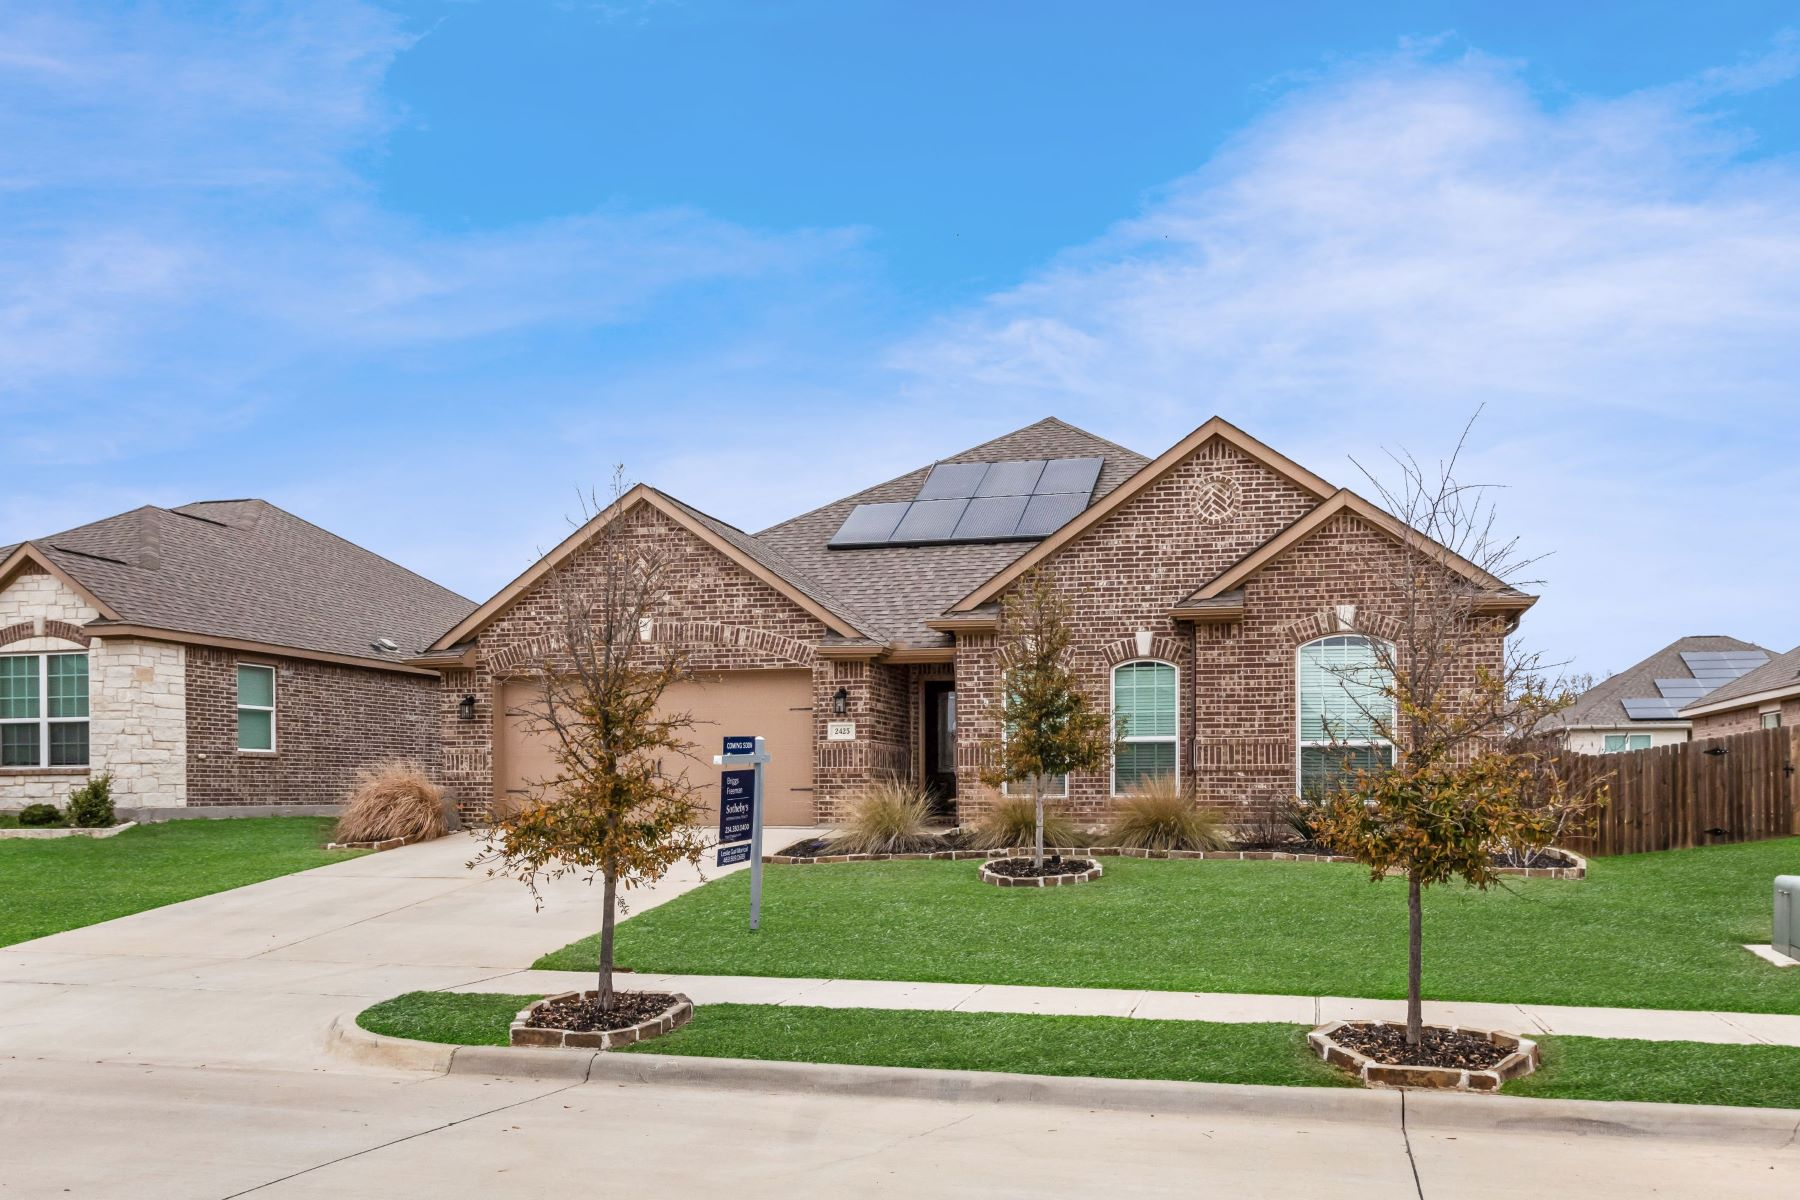 Single Family Homes für Verkauf beim Eye-Catching Curb Appeal Greets You in Summer Oaks Denton 2425 Spring Meadow Drive, Denton, Texas 76209 Vereinigte Staaten